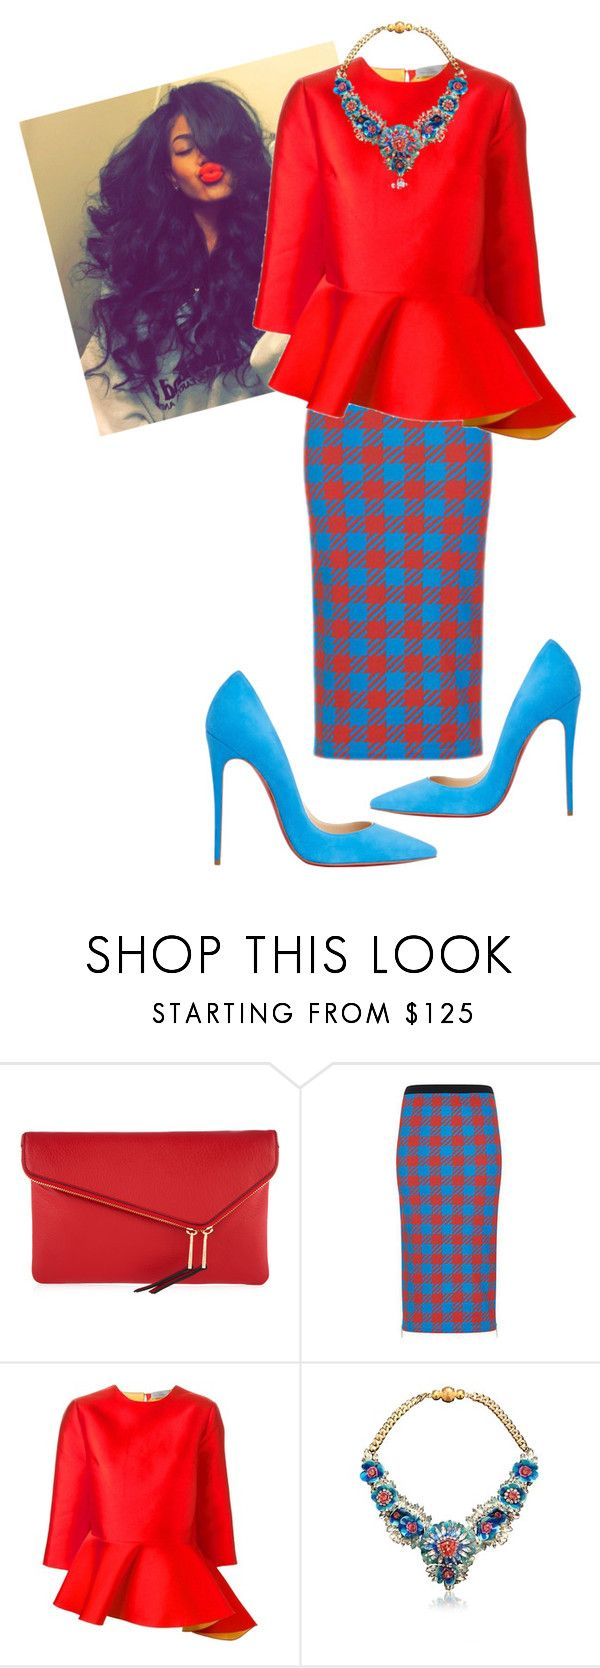 """Untitled #504"" by cogic-fashion ❤ liked on Polyvore featuring Henri Bendel, House of Holland, Preen, SHOUROUK and Christian Louboutin"